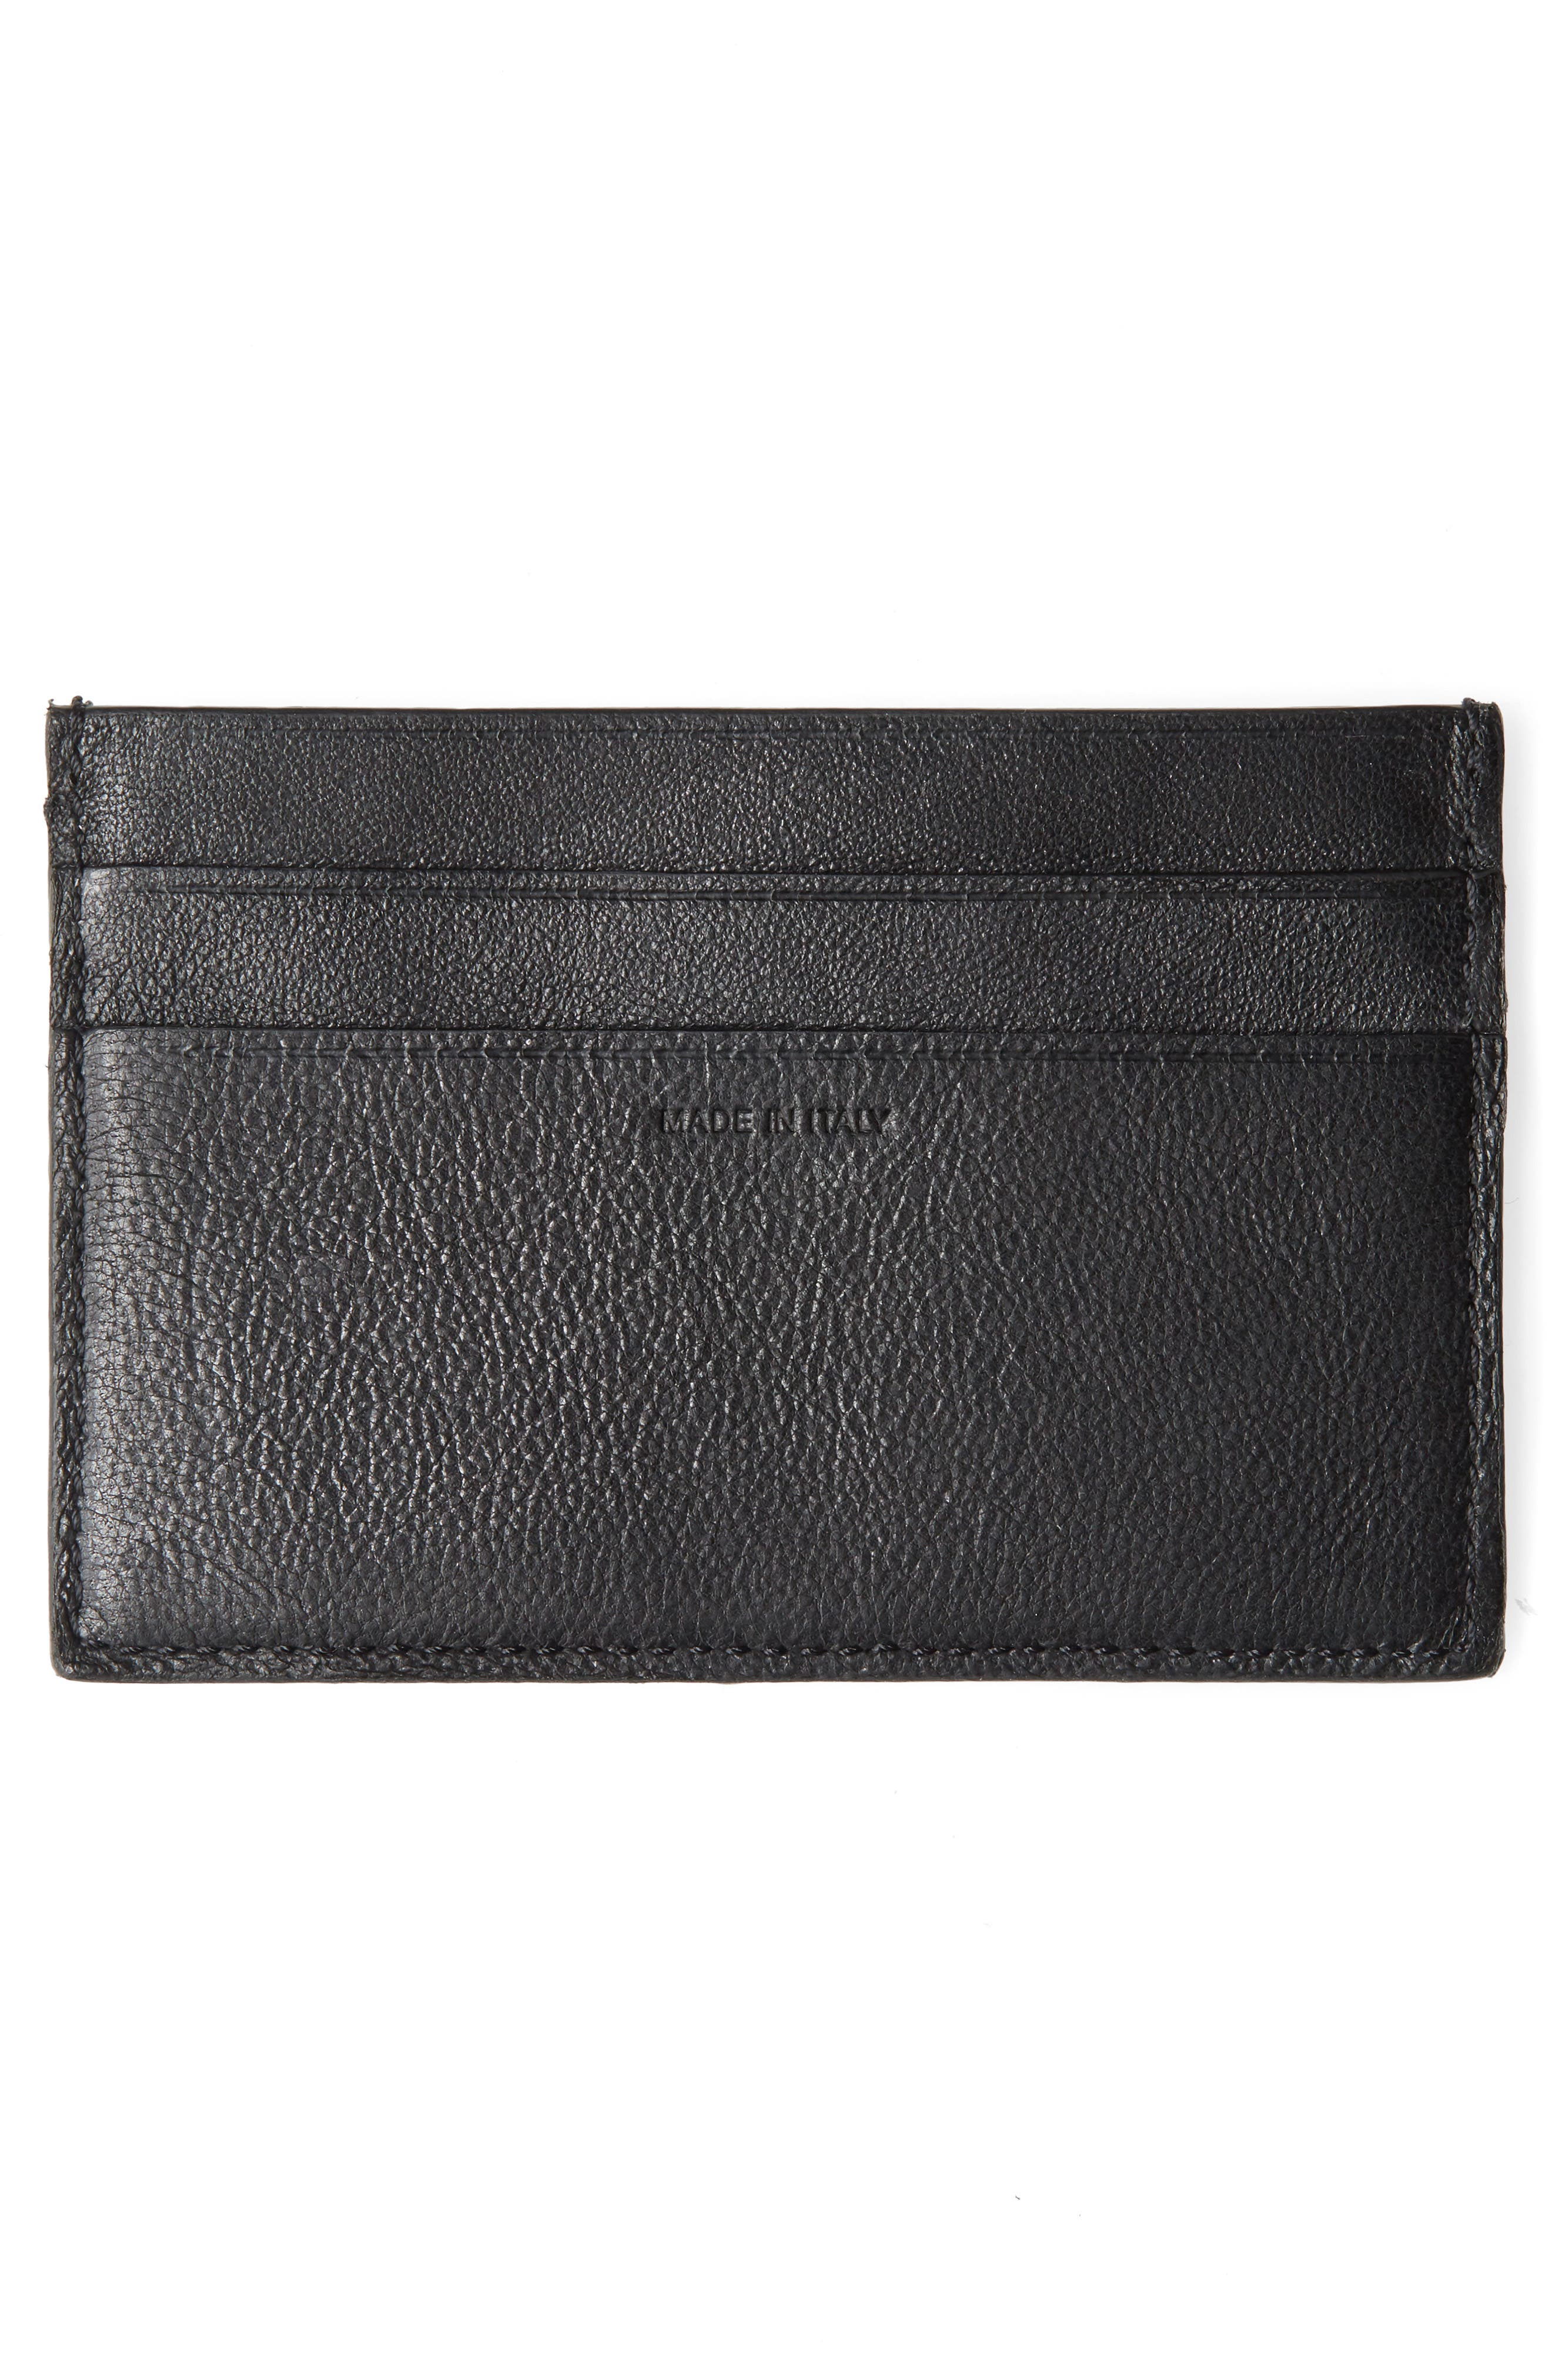 Leather Card Case,                             Alternate thumbnail 2, color,                             964